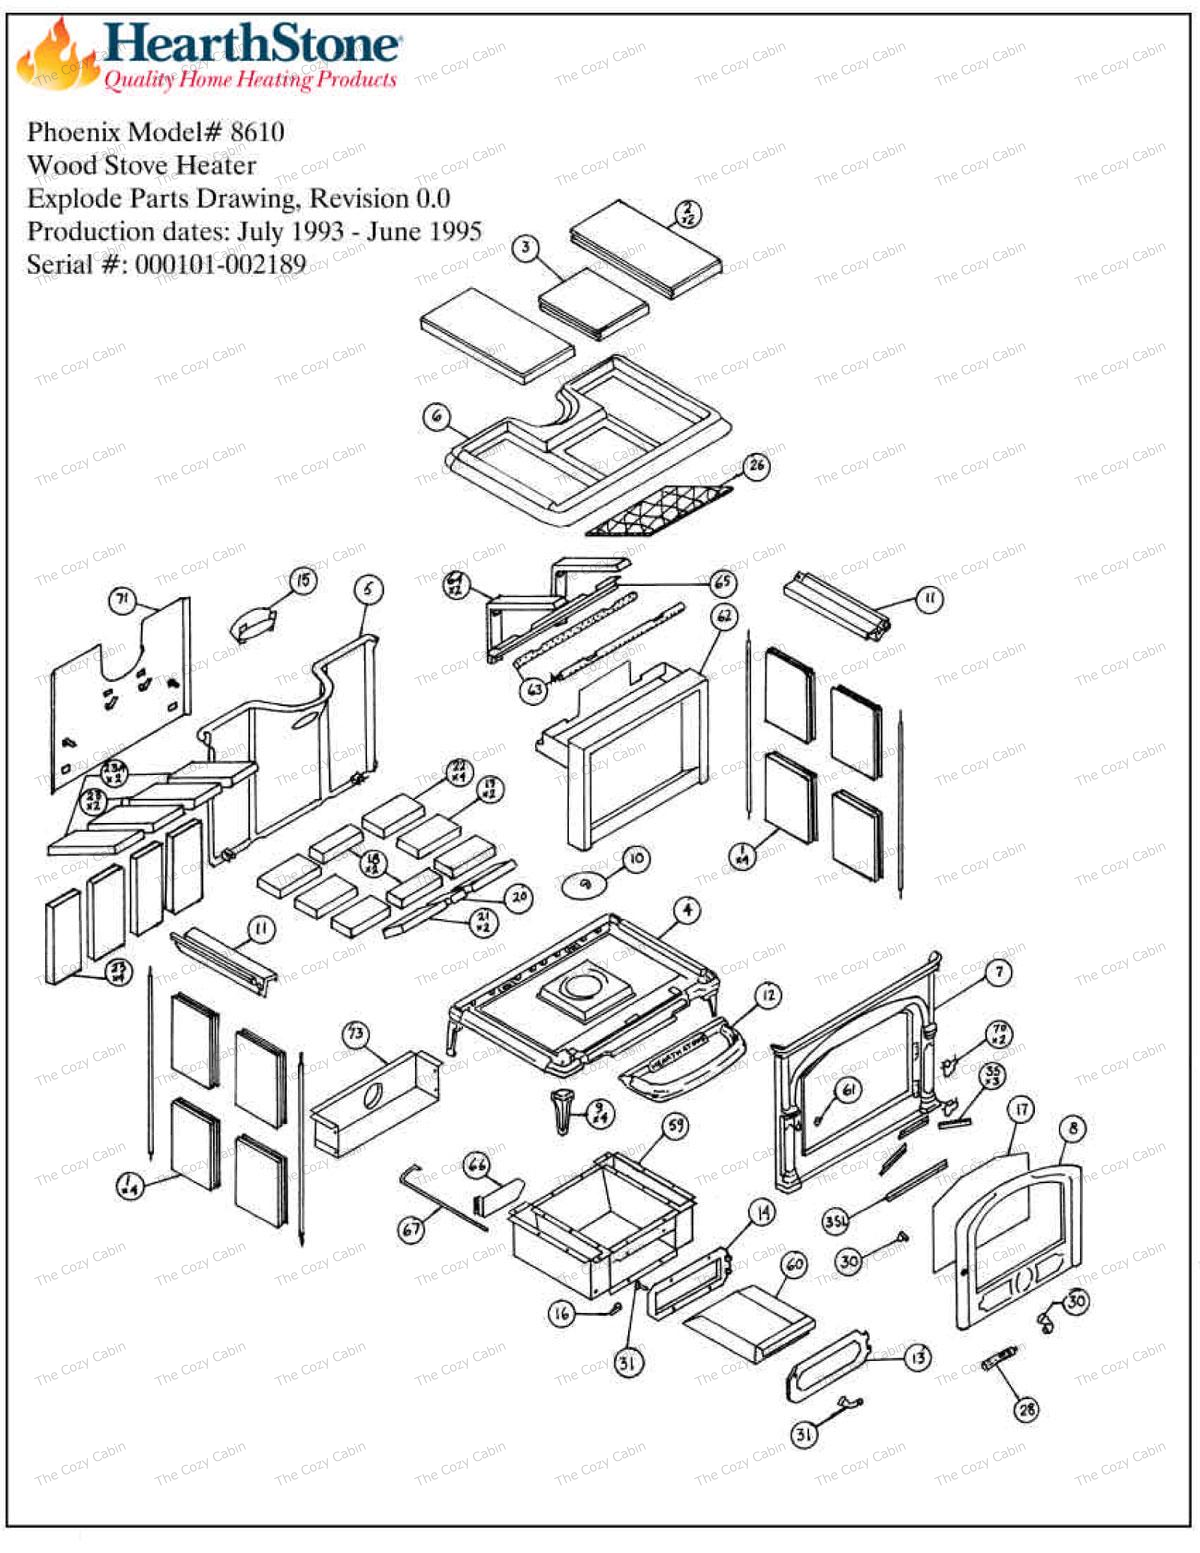 Phoenix Model 8610 Parts #8610 - Phoenix Model 8610 Parts (8610) The Cozy Cabin Hearthstone Parts Store